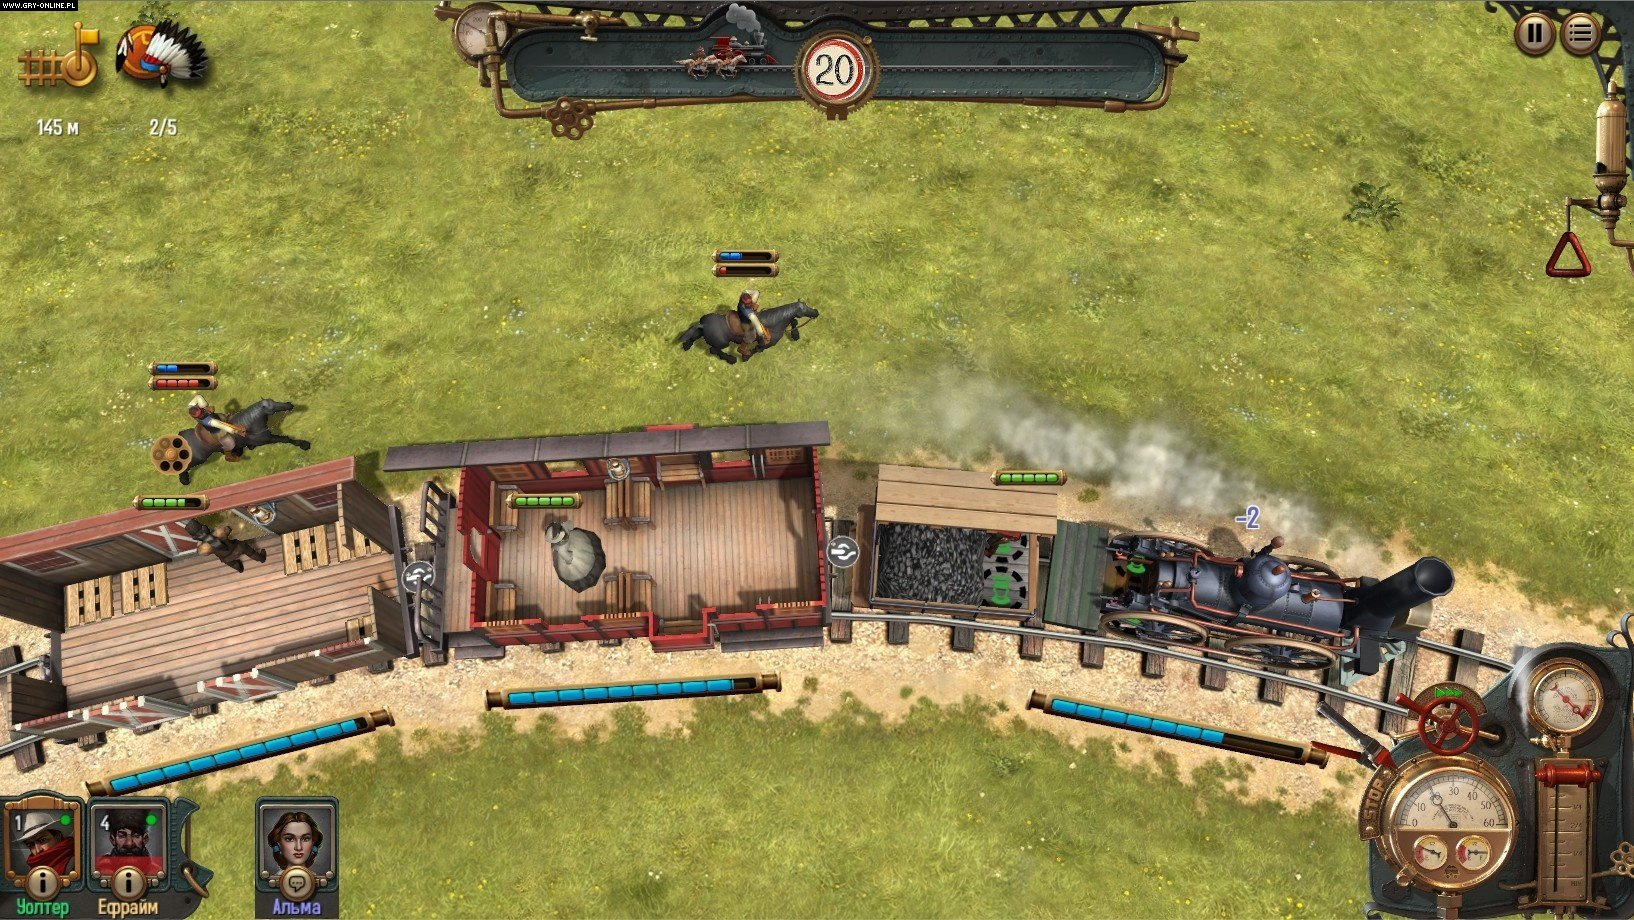 Bounty Train PC Games Image 6/26, Corbie Games, Daedalic Entertainment